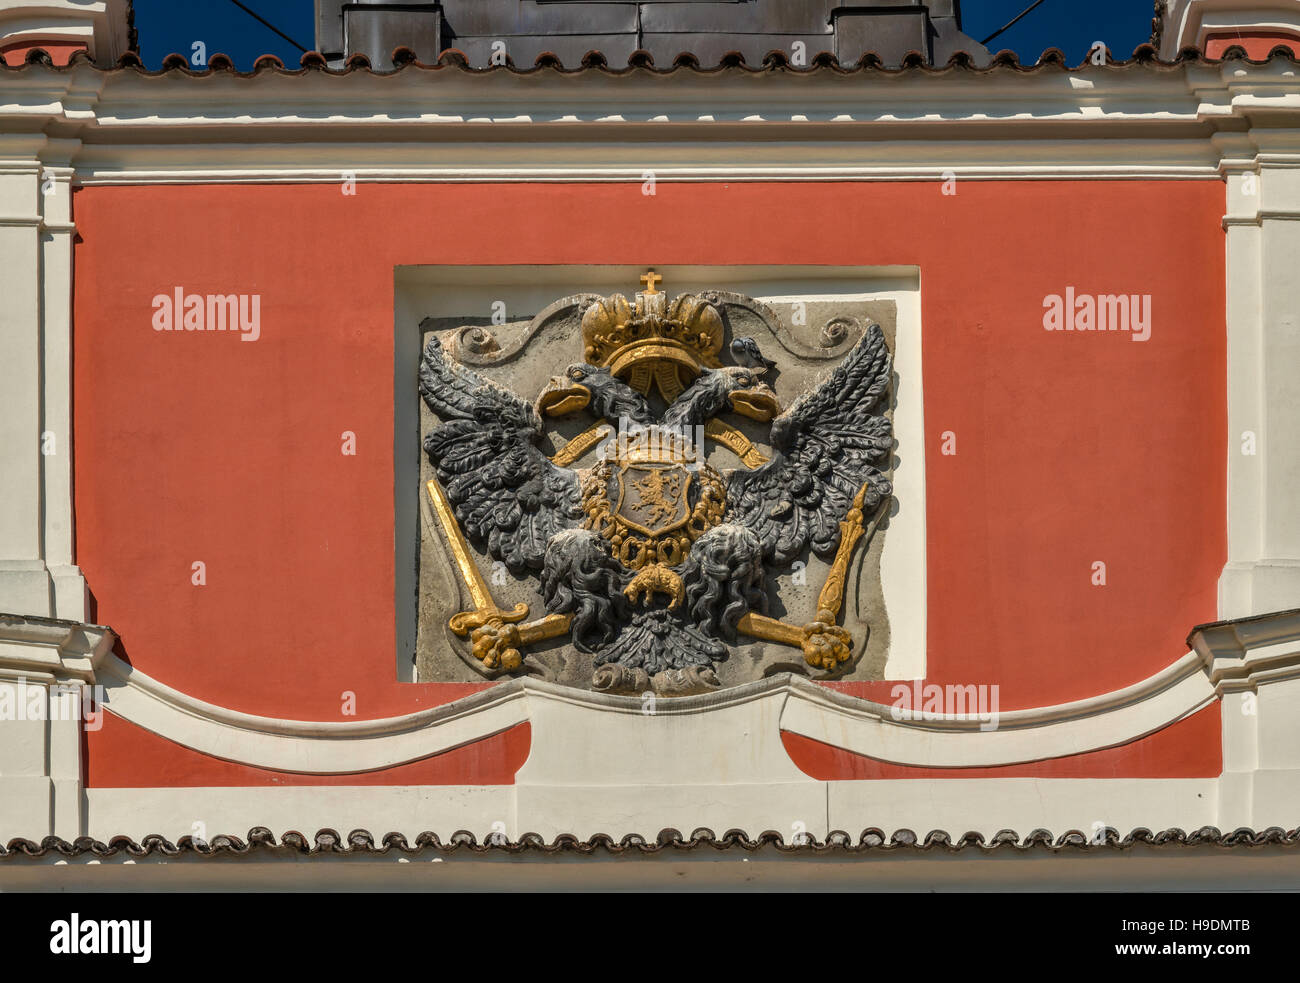 Double-headed eagle of Austrian Empire with lion of Bohemia, coat of arms at Old Town Hall in Chrudim, Bohemia, - Stock Image